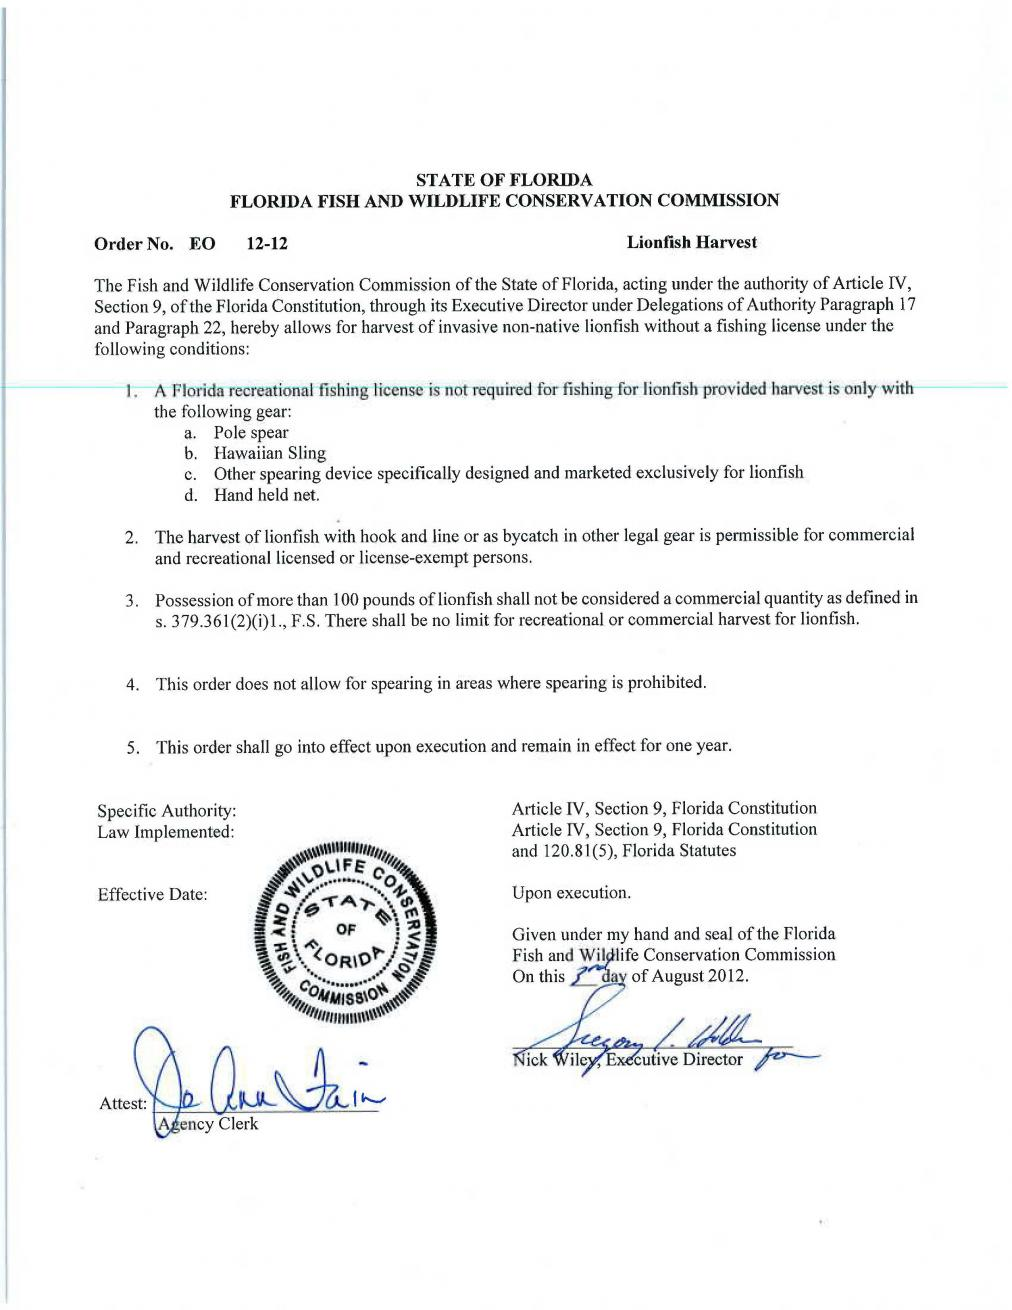 Fwc 8 3 12 executive order fishing license not required for How much is a florida fishing license